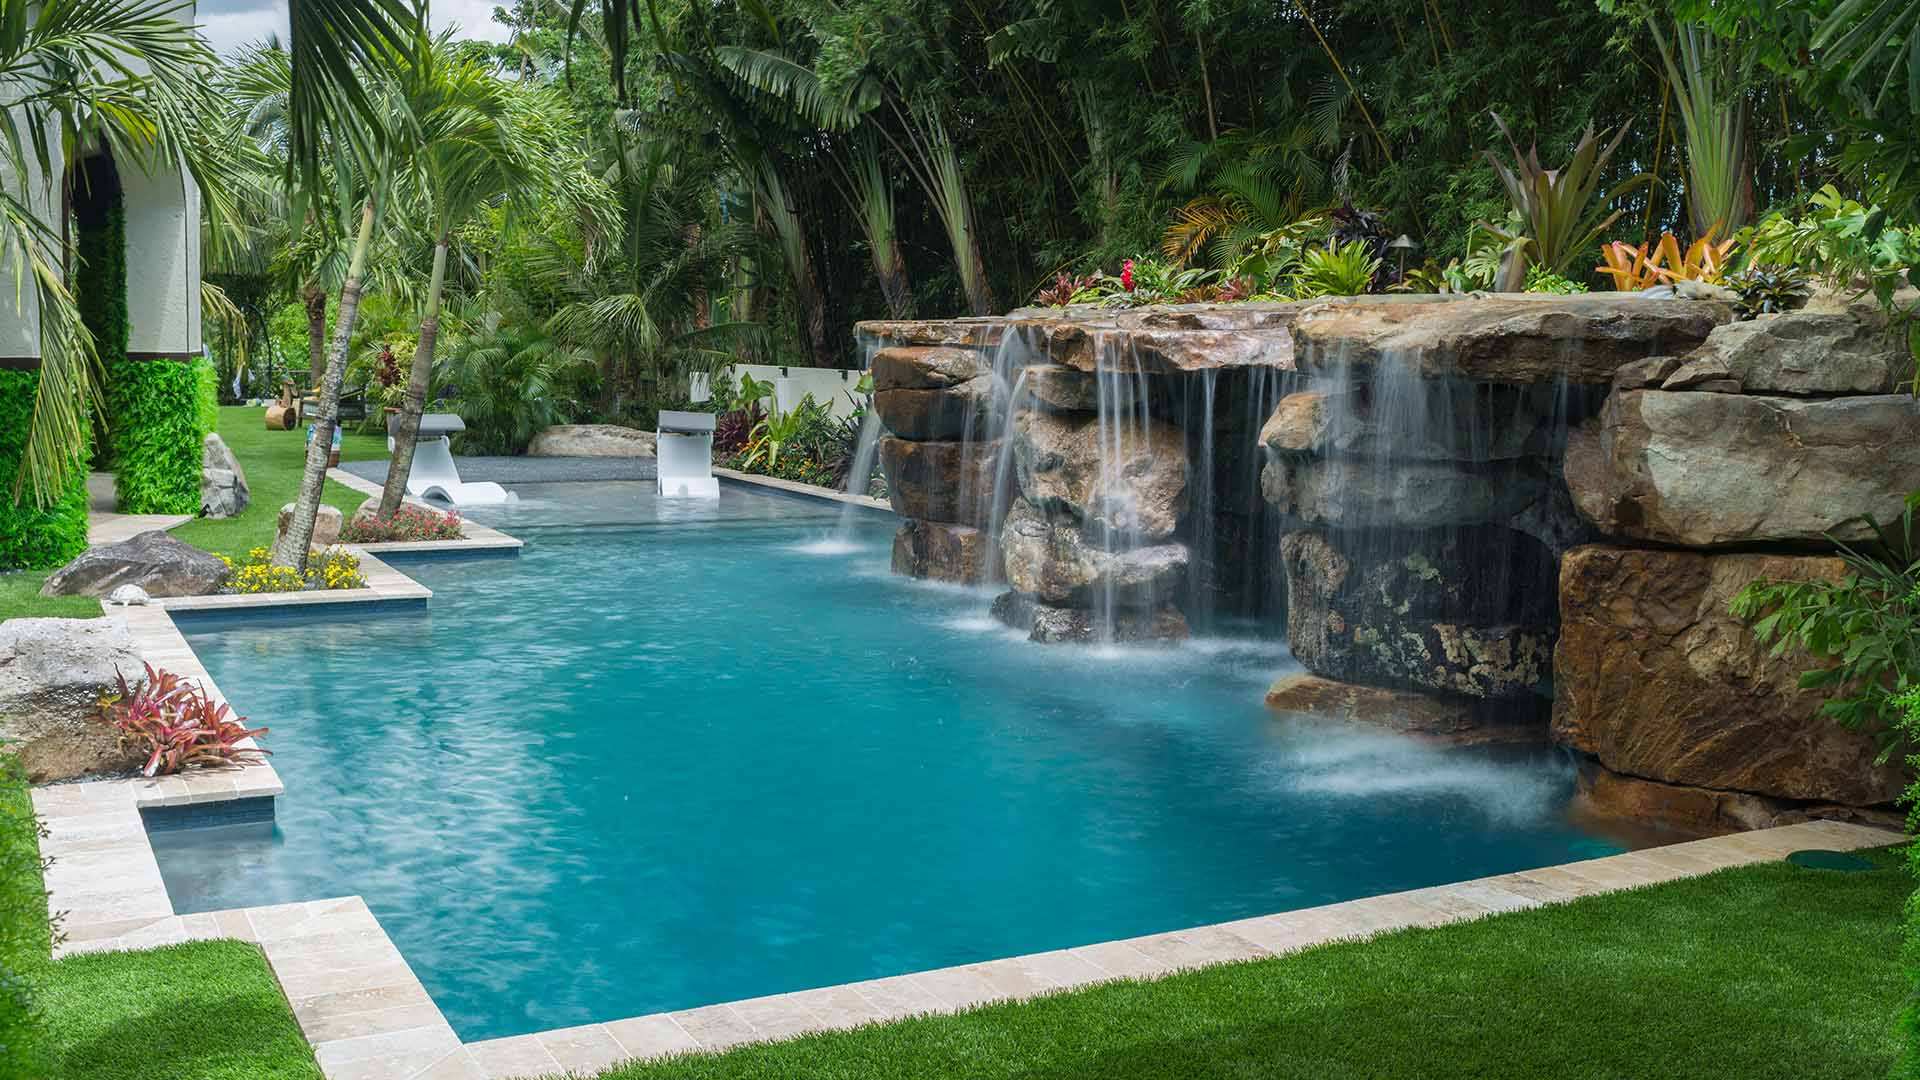 Lucas Lagoons Custom Pool Builder In Sarasota Featured On Insane Pools